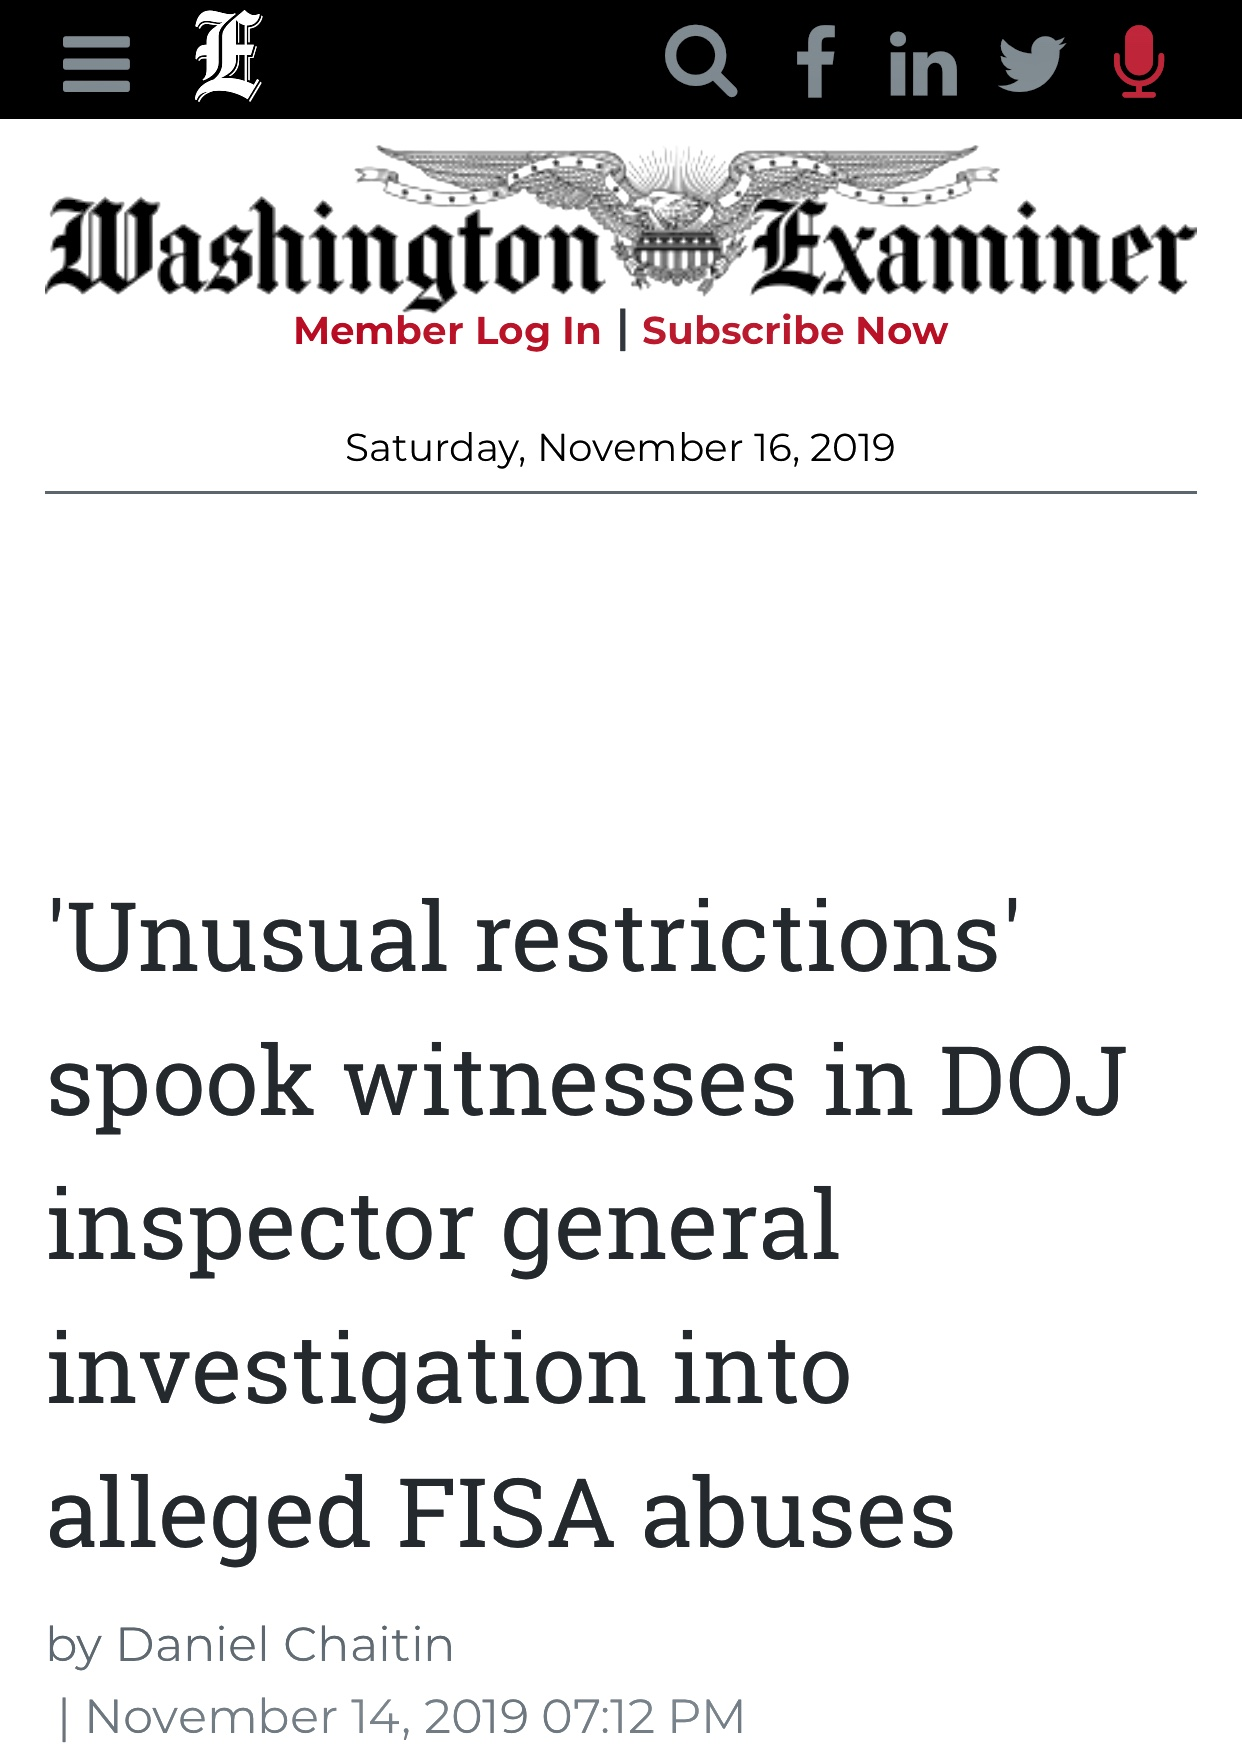 ‪IG Allowed Witnesses To Review IG Report ‬